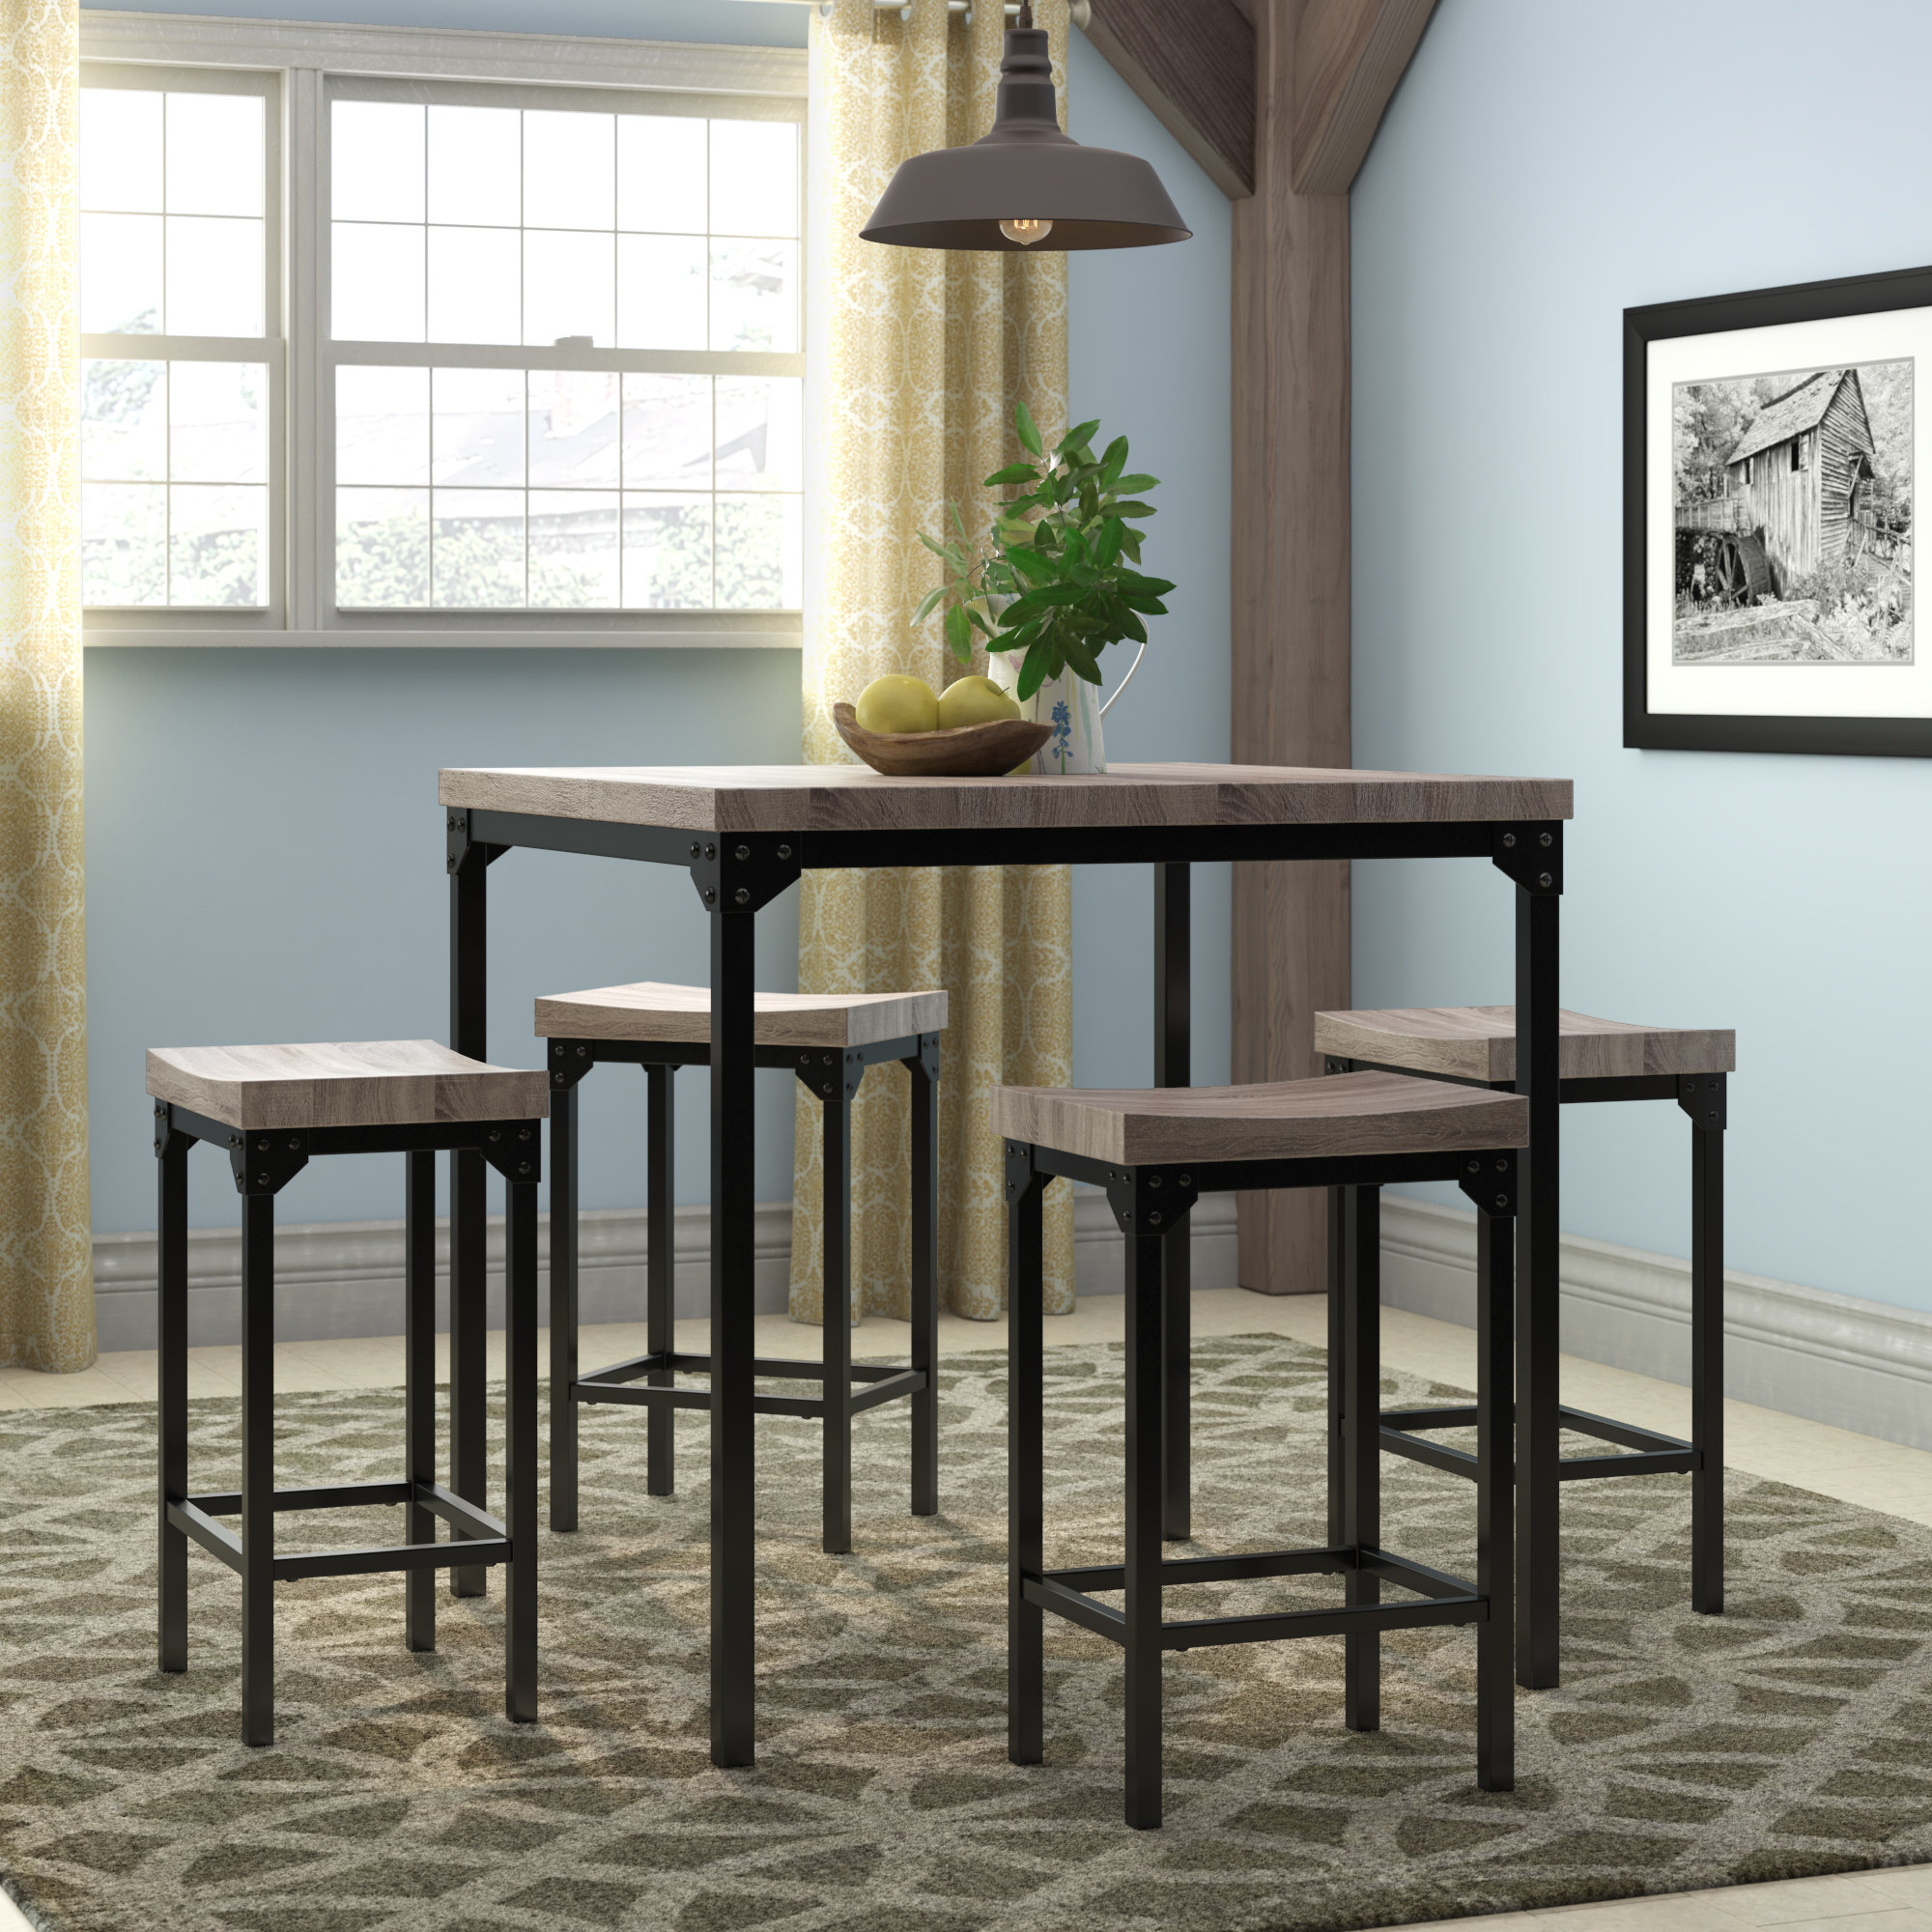 Kerley 4 Piece Dining Sets For Popular Gracie Oaks Wegner 5 Piece Counter Height Dining Set & Reviews (#6 of 20)